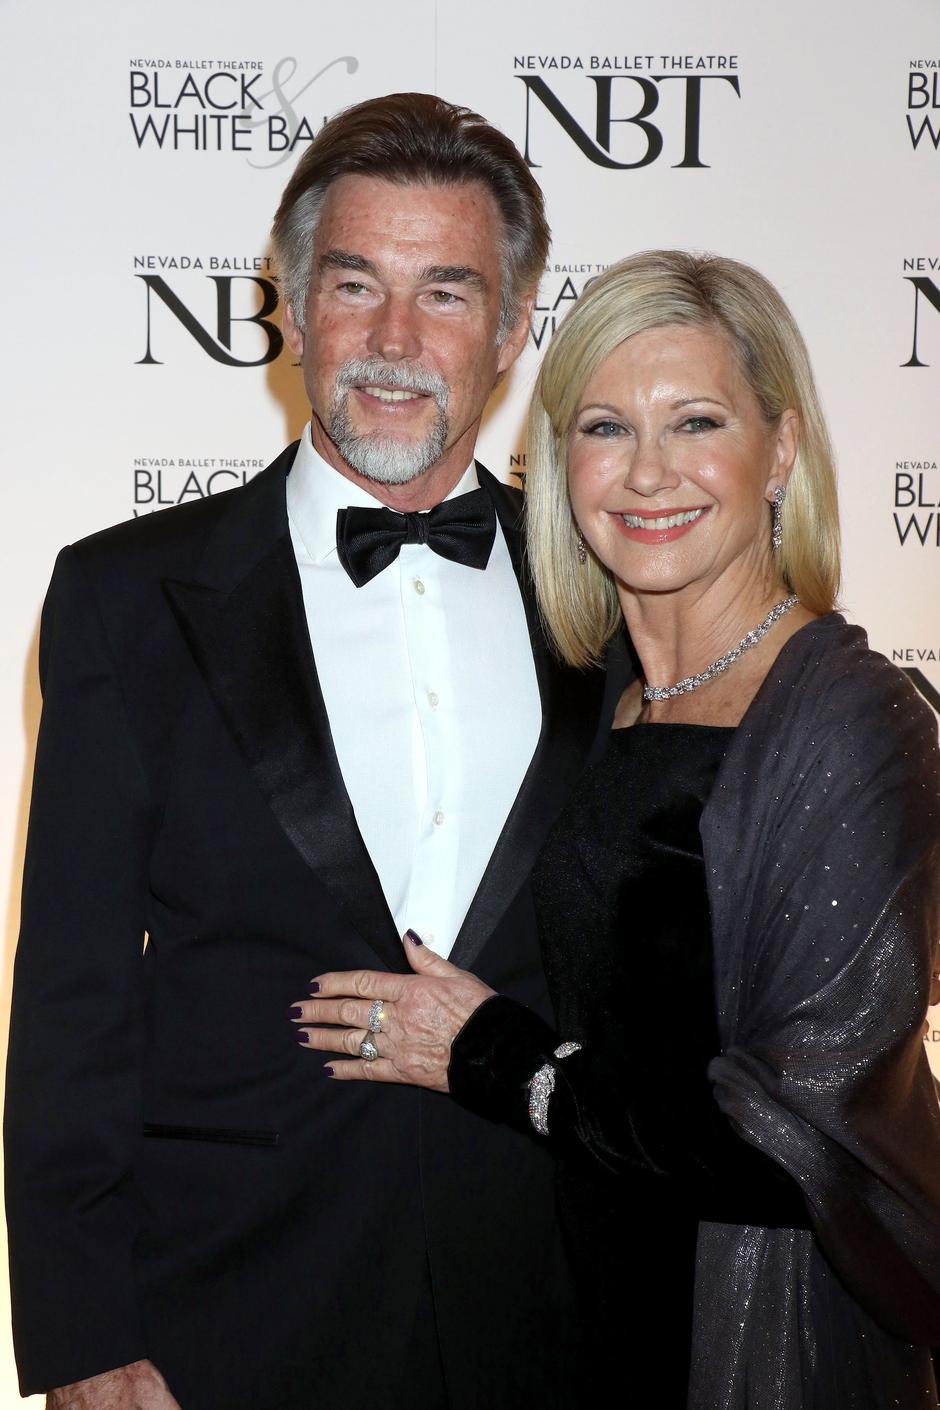 Nevada Ballet Theatre honours Olivia Newton-John - Las Vegas | Autor: AJM/Press Association/PIXSELL